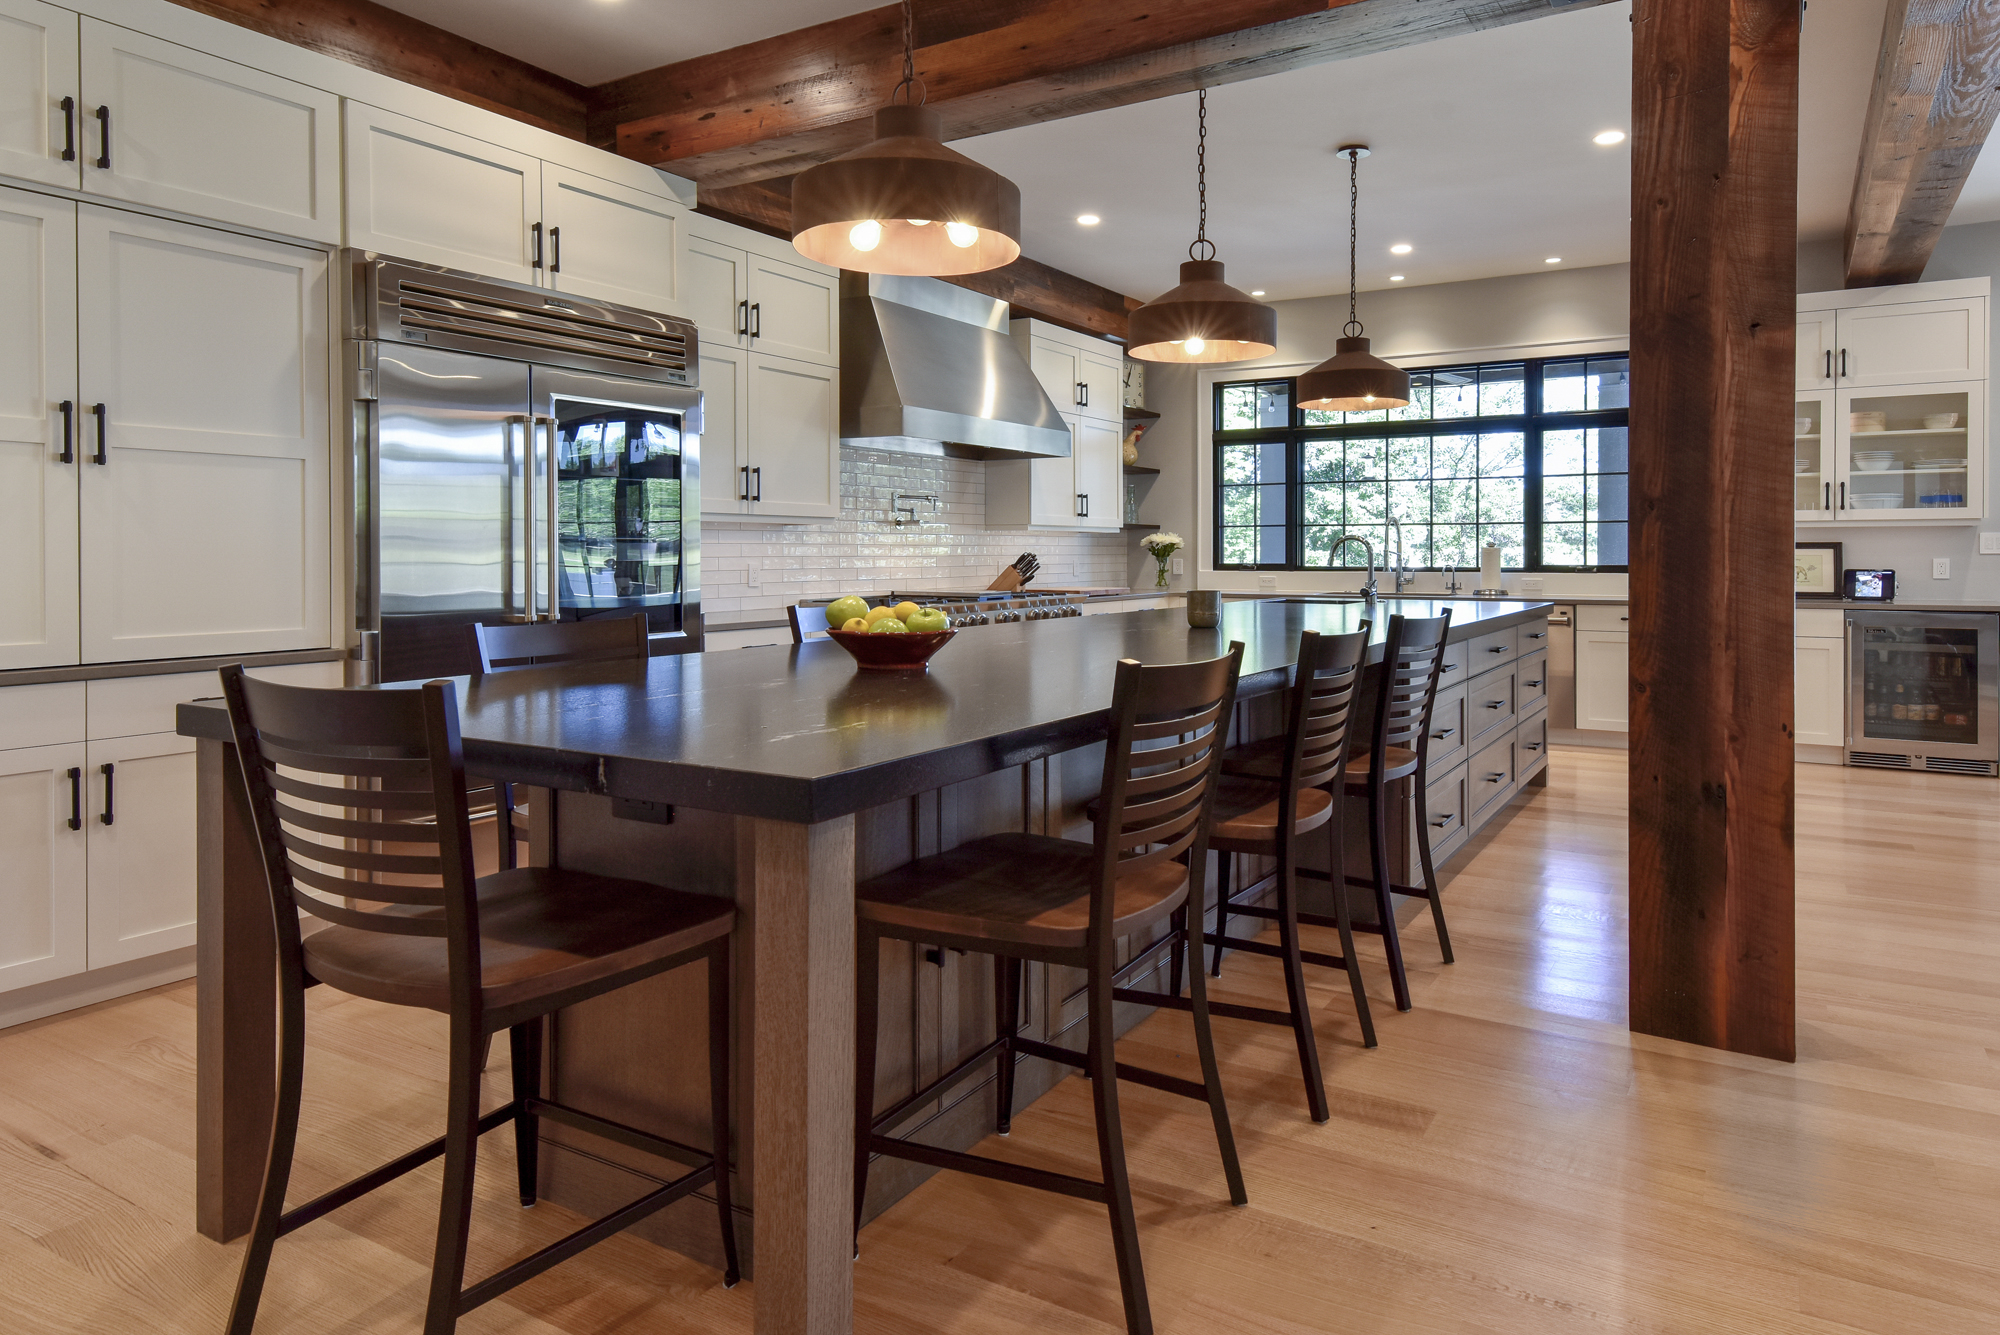 Kitchens, Breakfast & Dining Rooms Photo Gallery